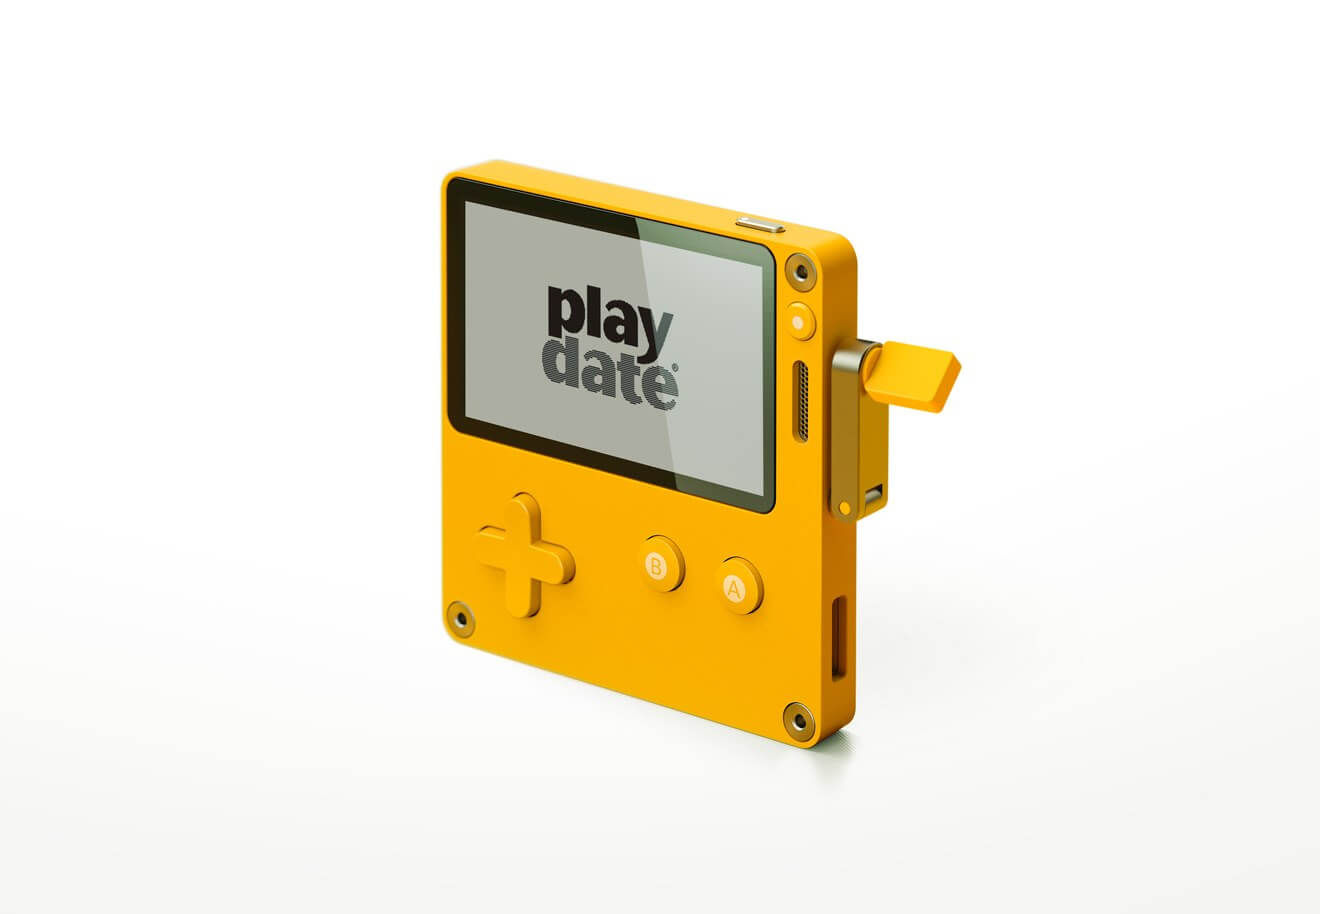 Check Out the Playdate, a Retro-style Handheld that Features a Crank Controller